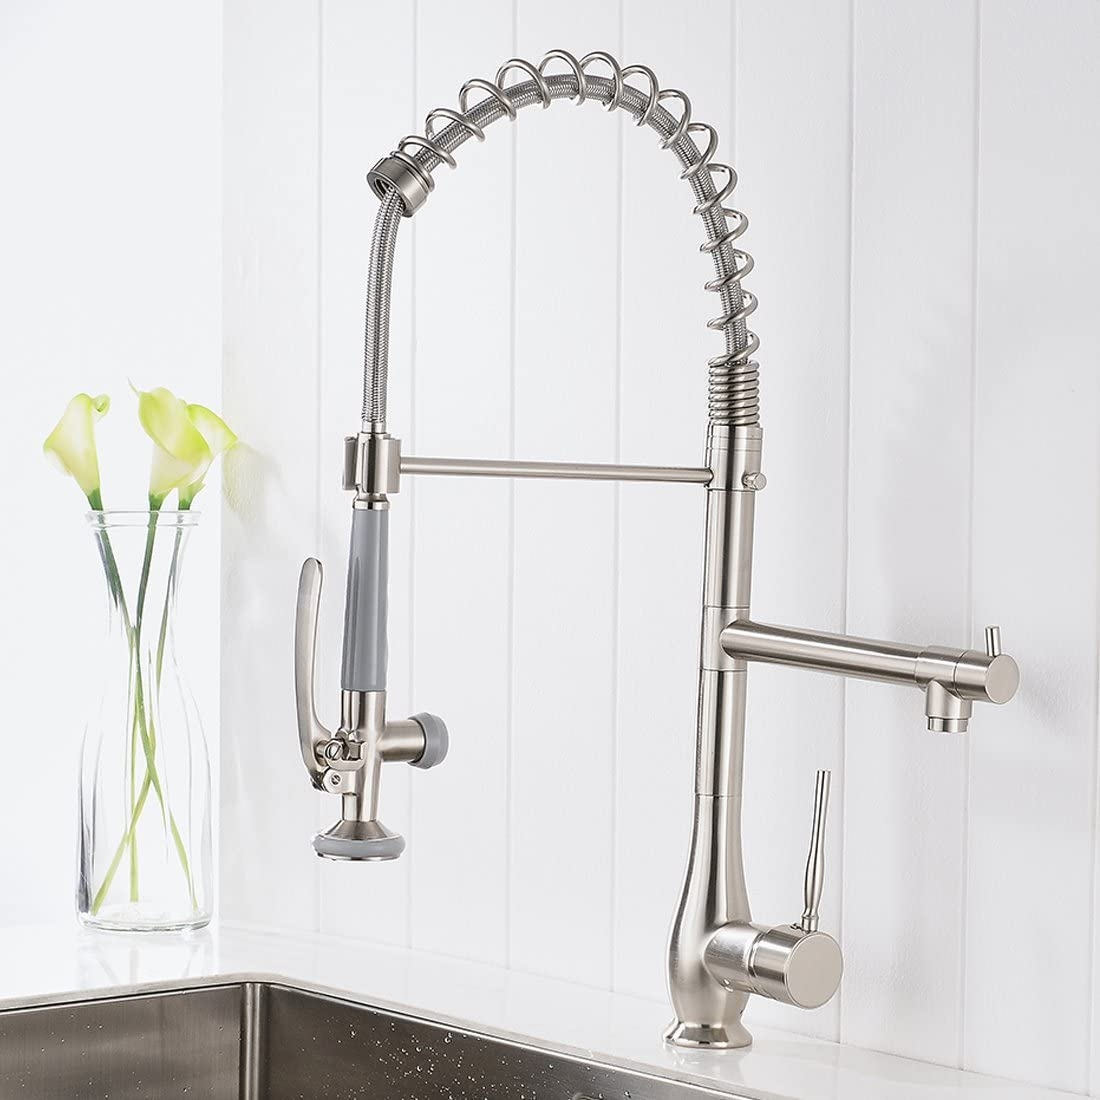 Parma Single Handle Deck Mounted Kitchen Sink Faucet